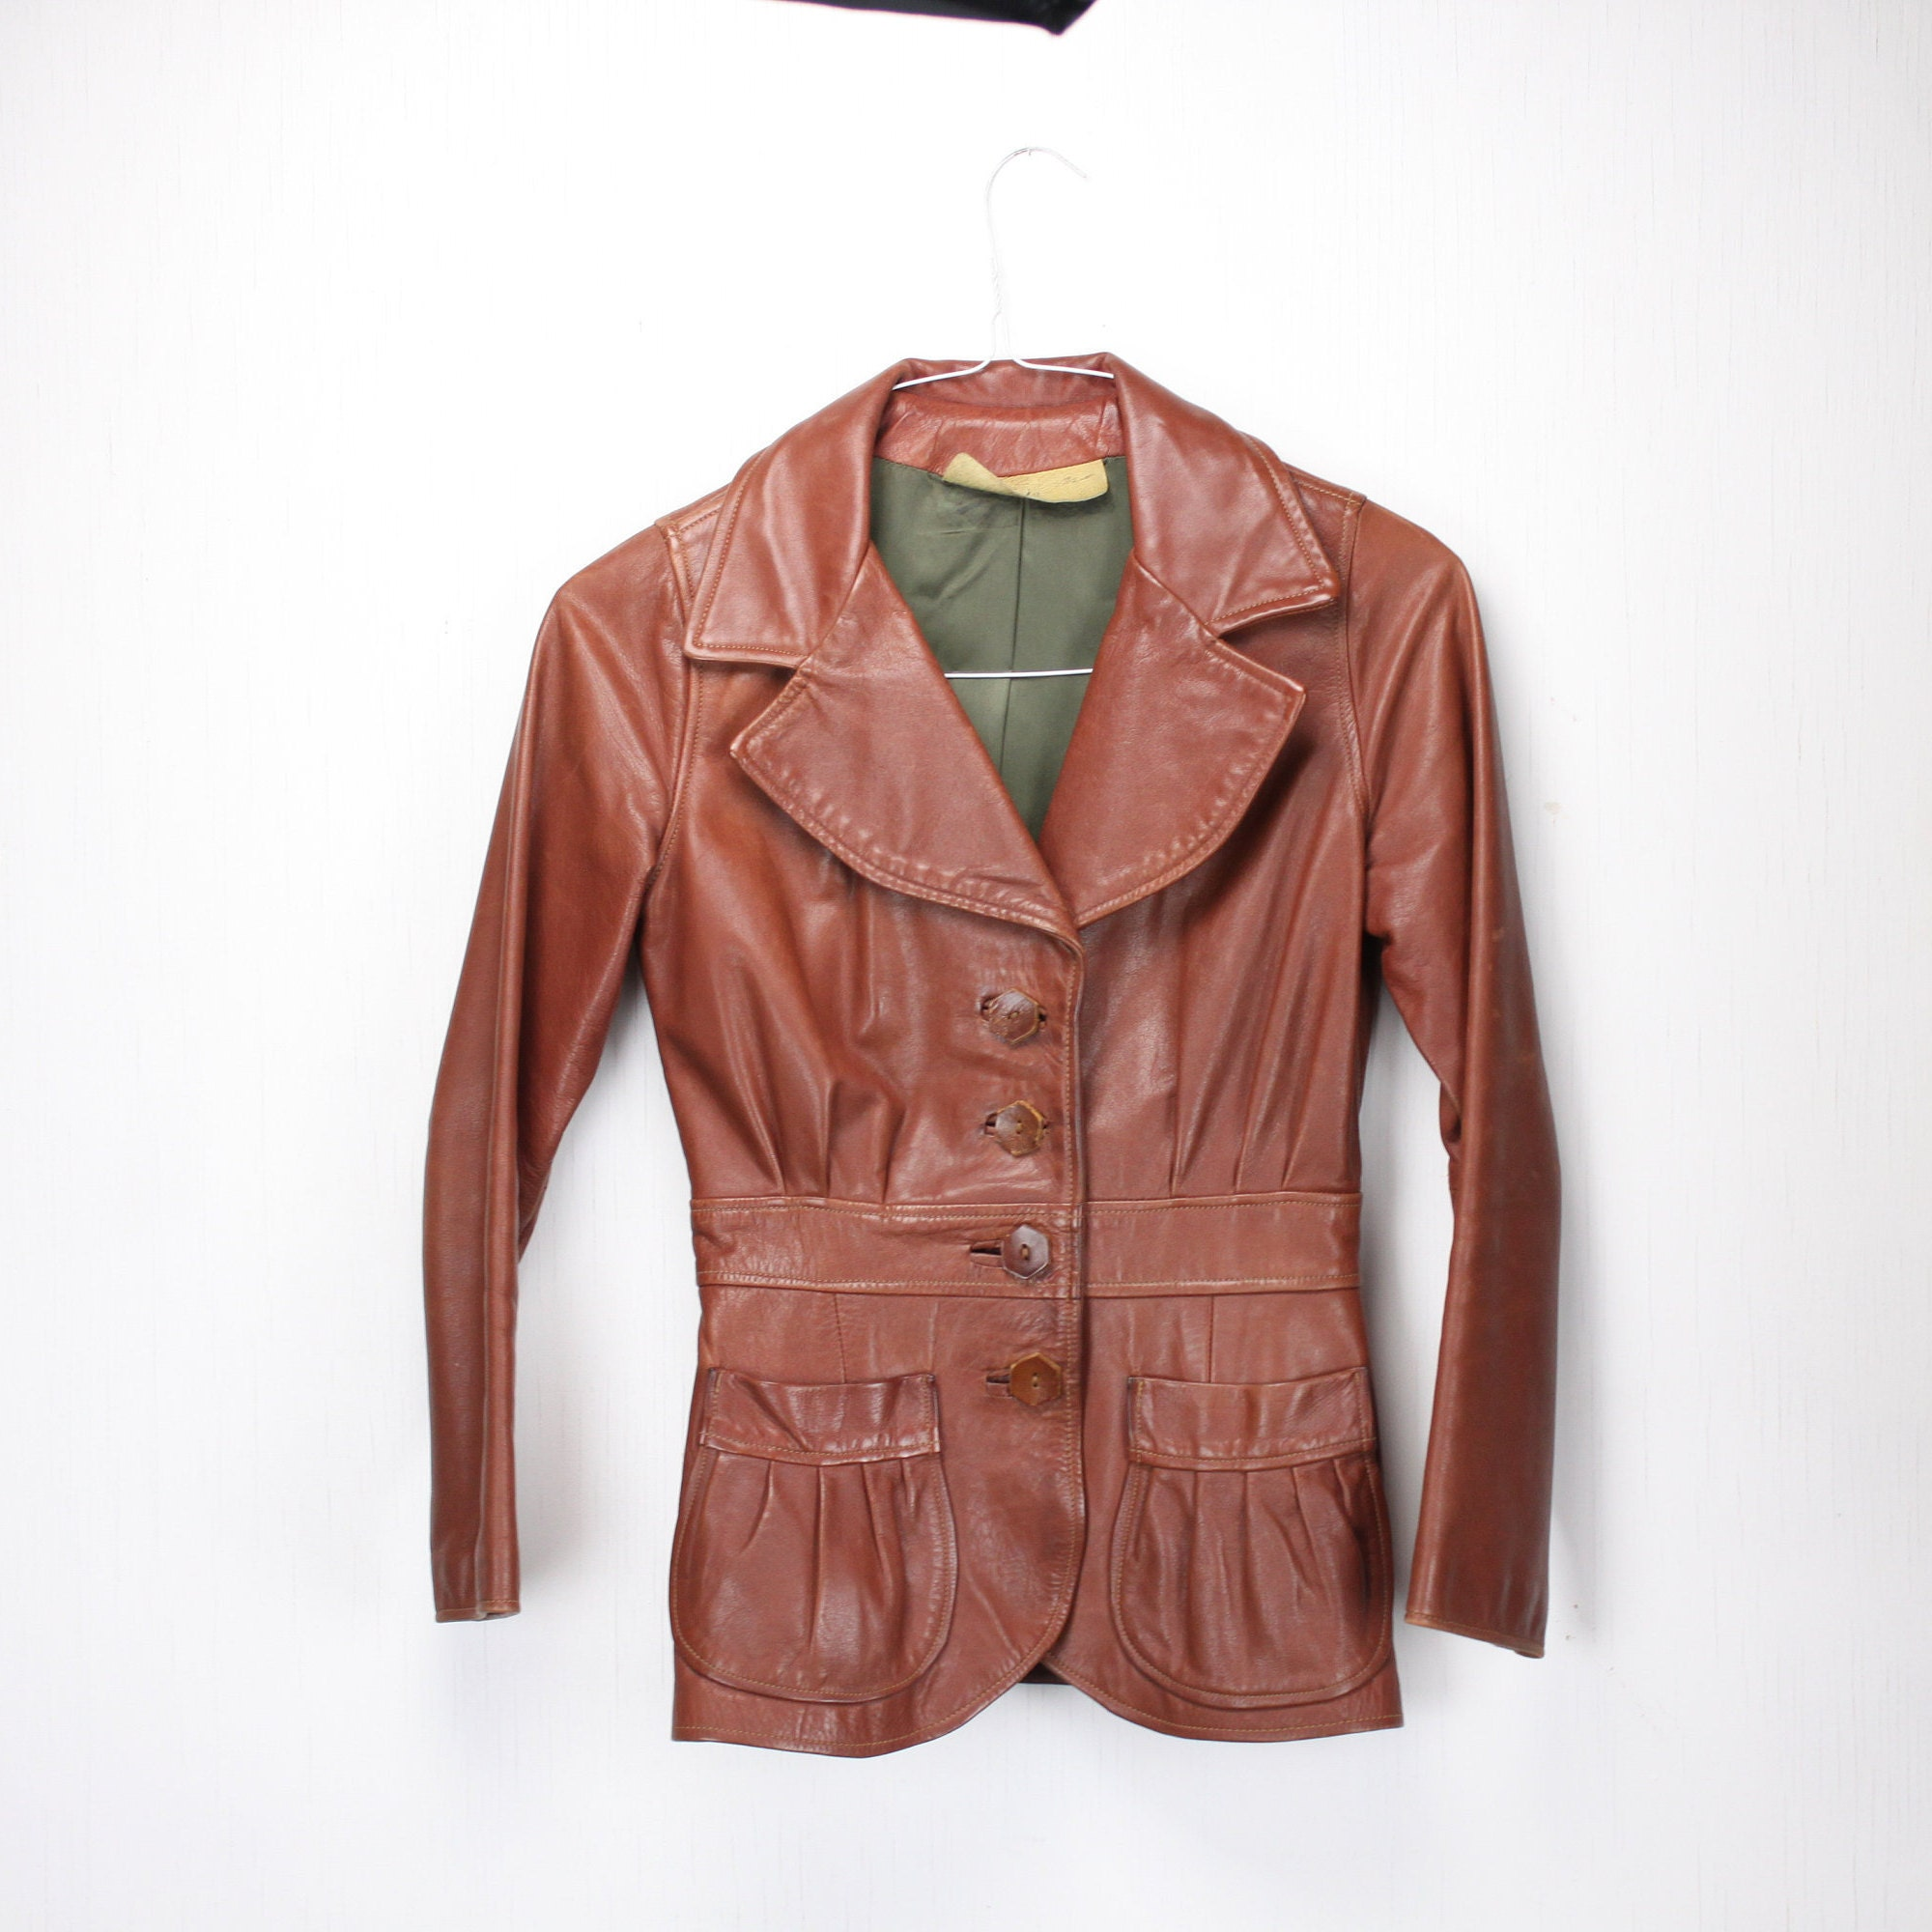 faca64c39b76 Vintage Women's Riding Jacket - Brown Leather - Handmade - Full ...